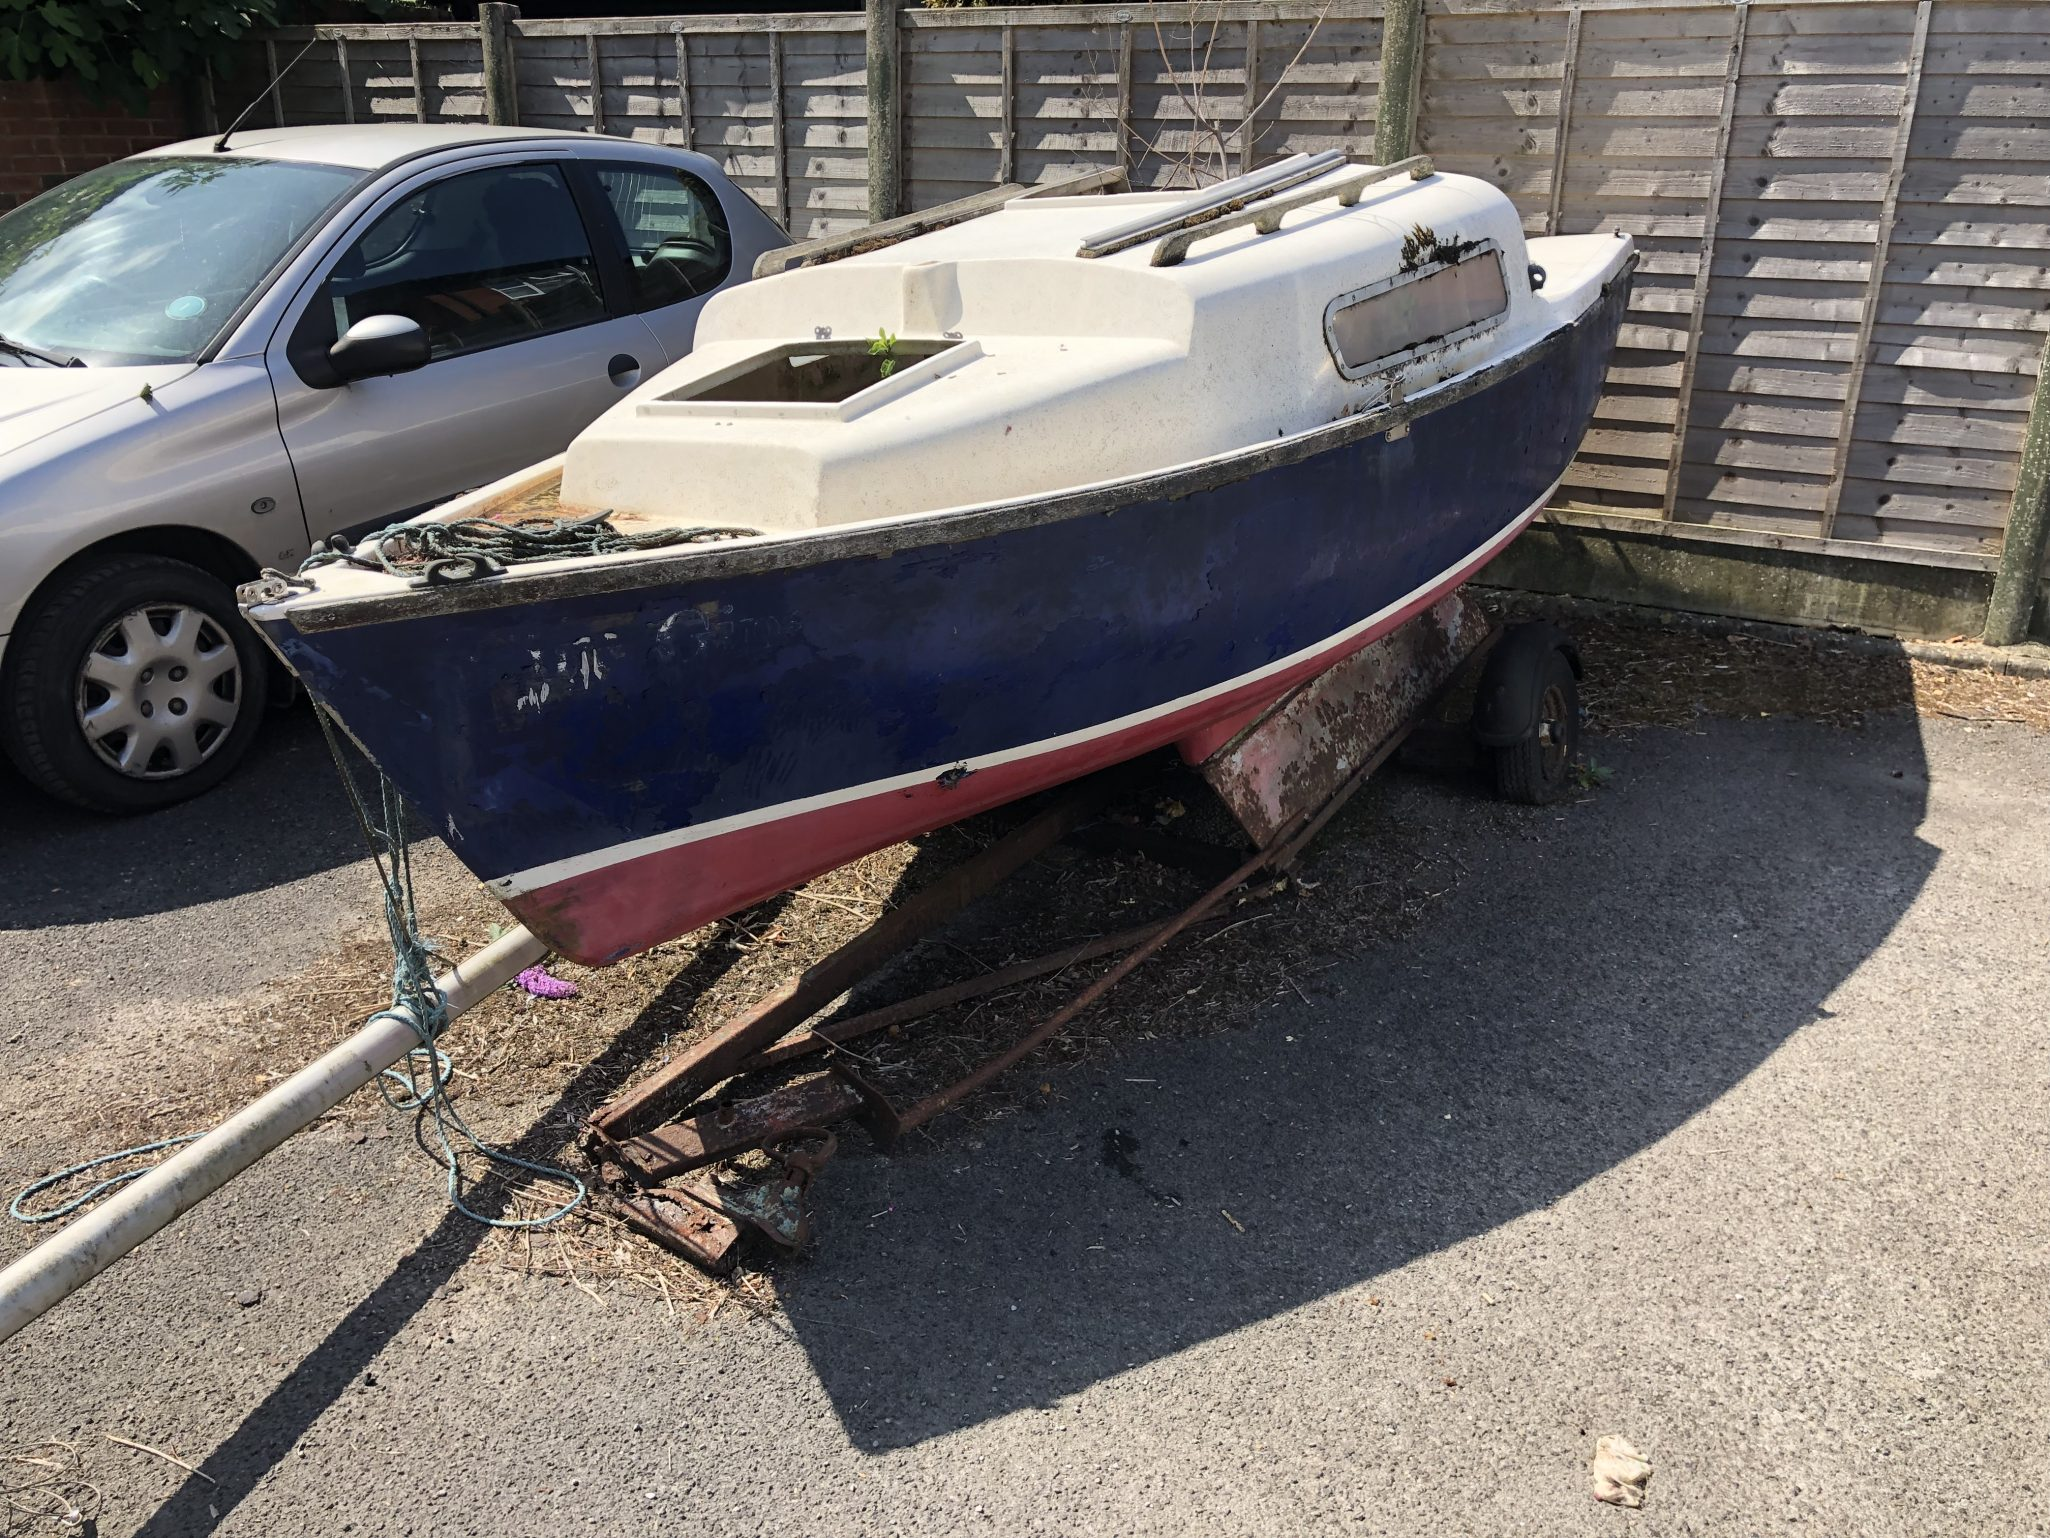 Scrap Yacht in a Car Park Collected From Lymington